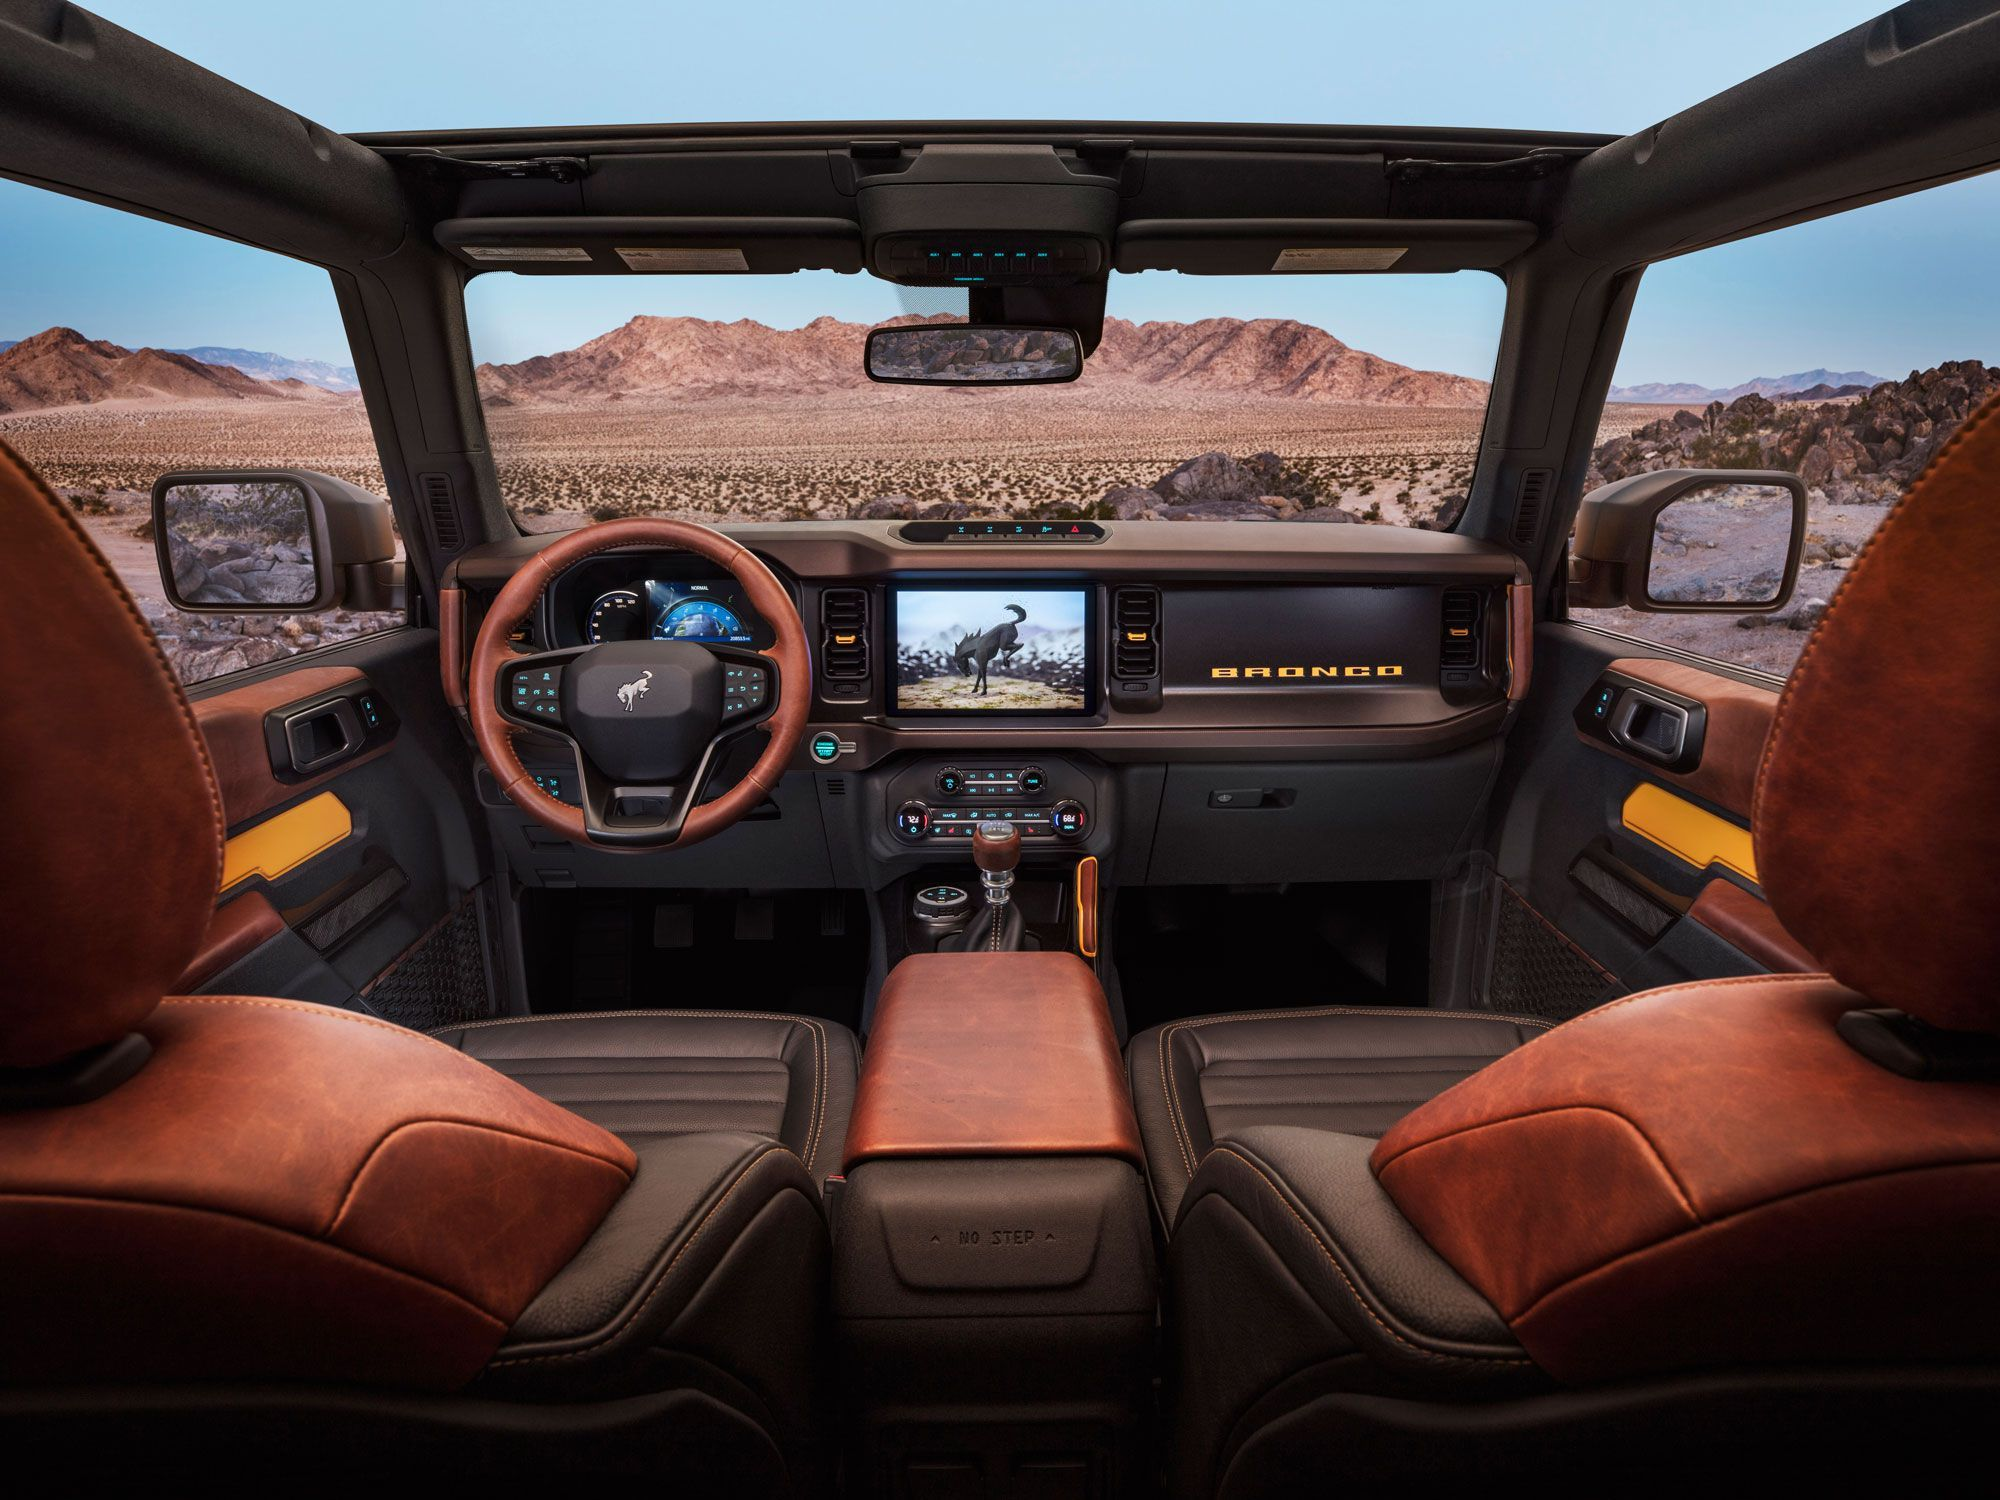 The Ford Bronco Is Back And Ready To Take On The Jeep Wrangler In New Ways In 2020 Ford Bronco Bronco Sports Bronco